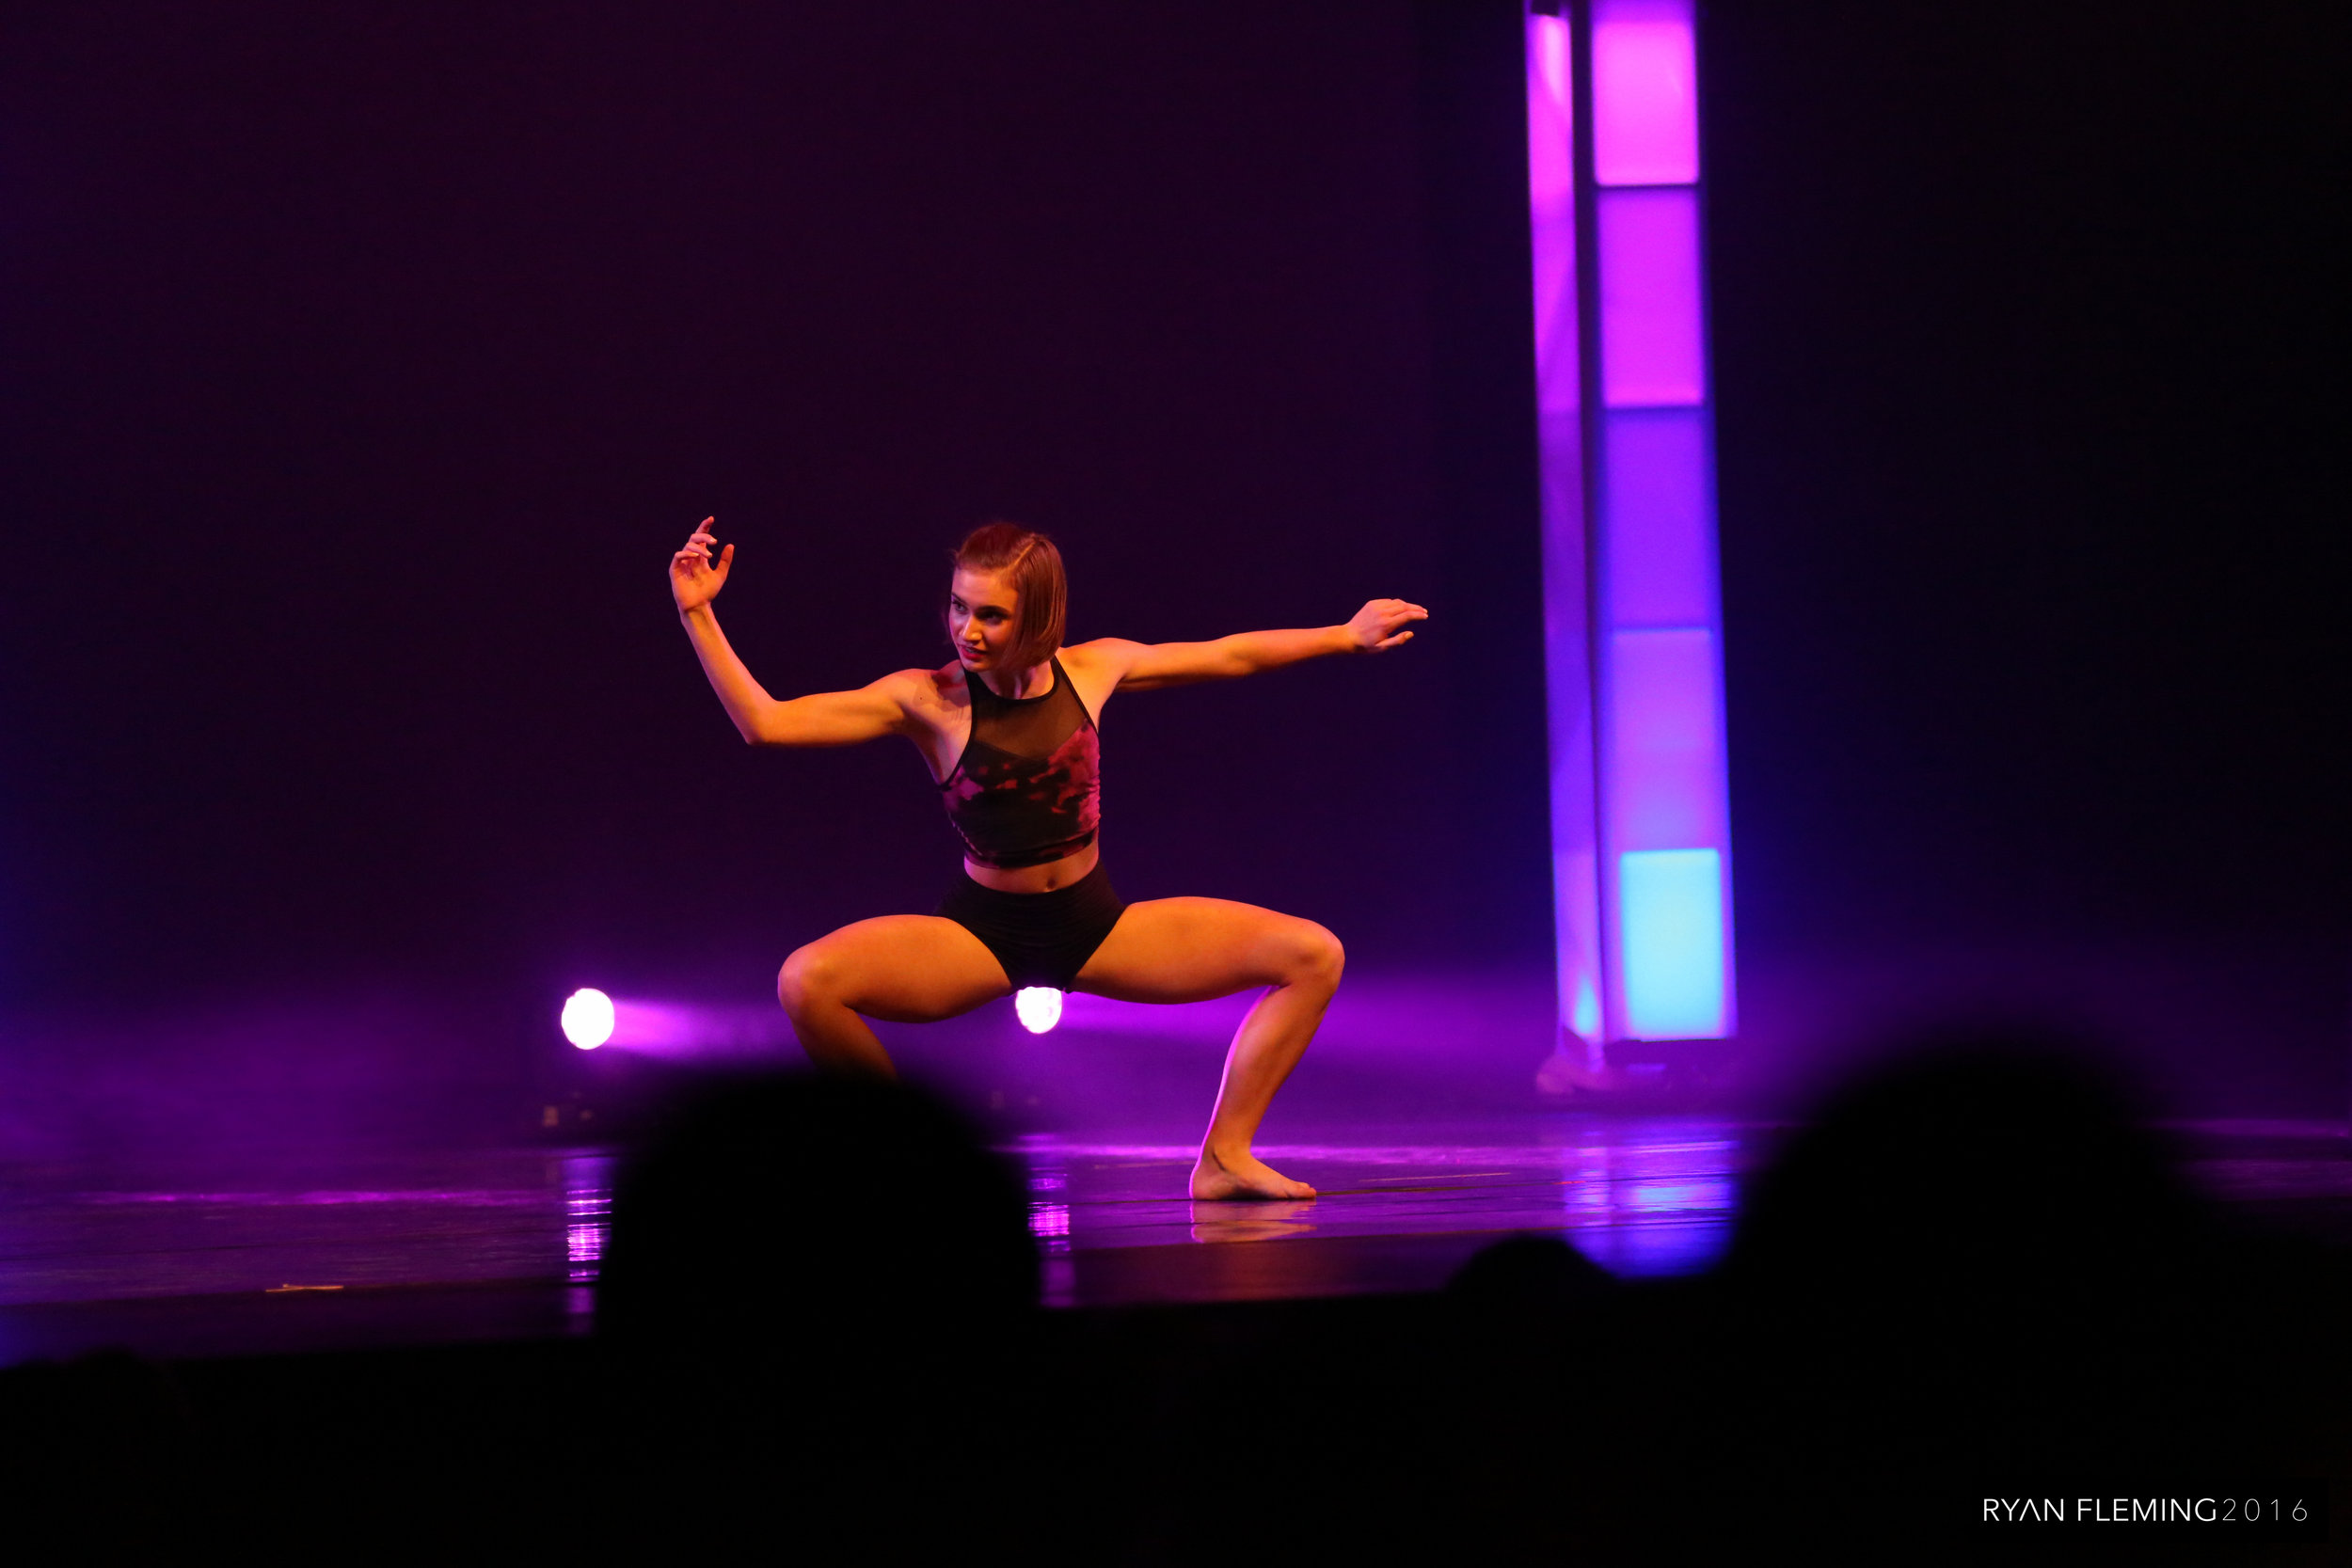 teen dance star - SB Dance Arts was PROUD to have three finalists in the 2016 inaugural year, and to have our own Frankie Harman take the title of Teen Dance Star 2016. She won a $1000 cash prize and the evening's proceeds provided low income students in SB County scholarships via the Arts Mentorship Program.